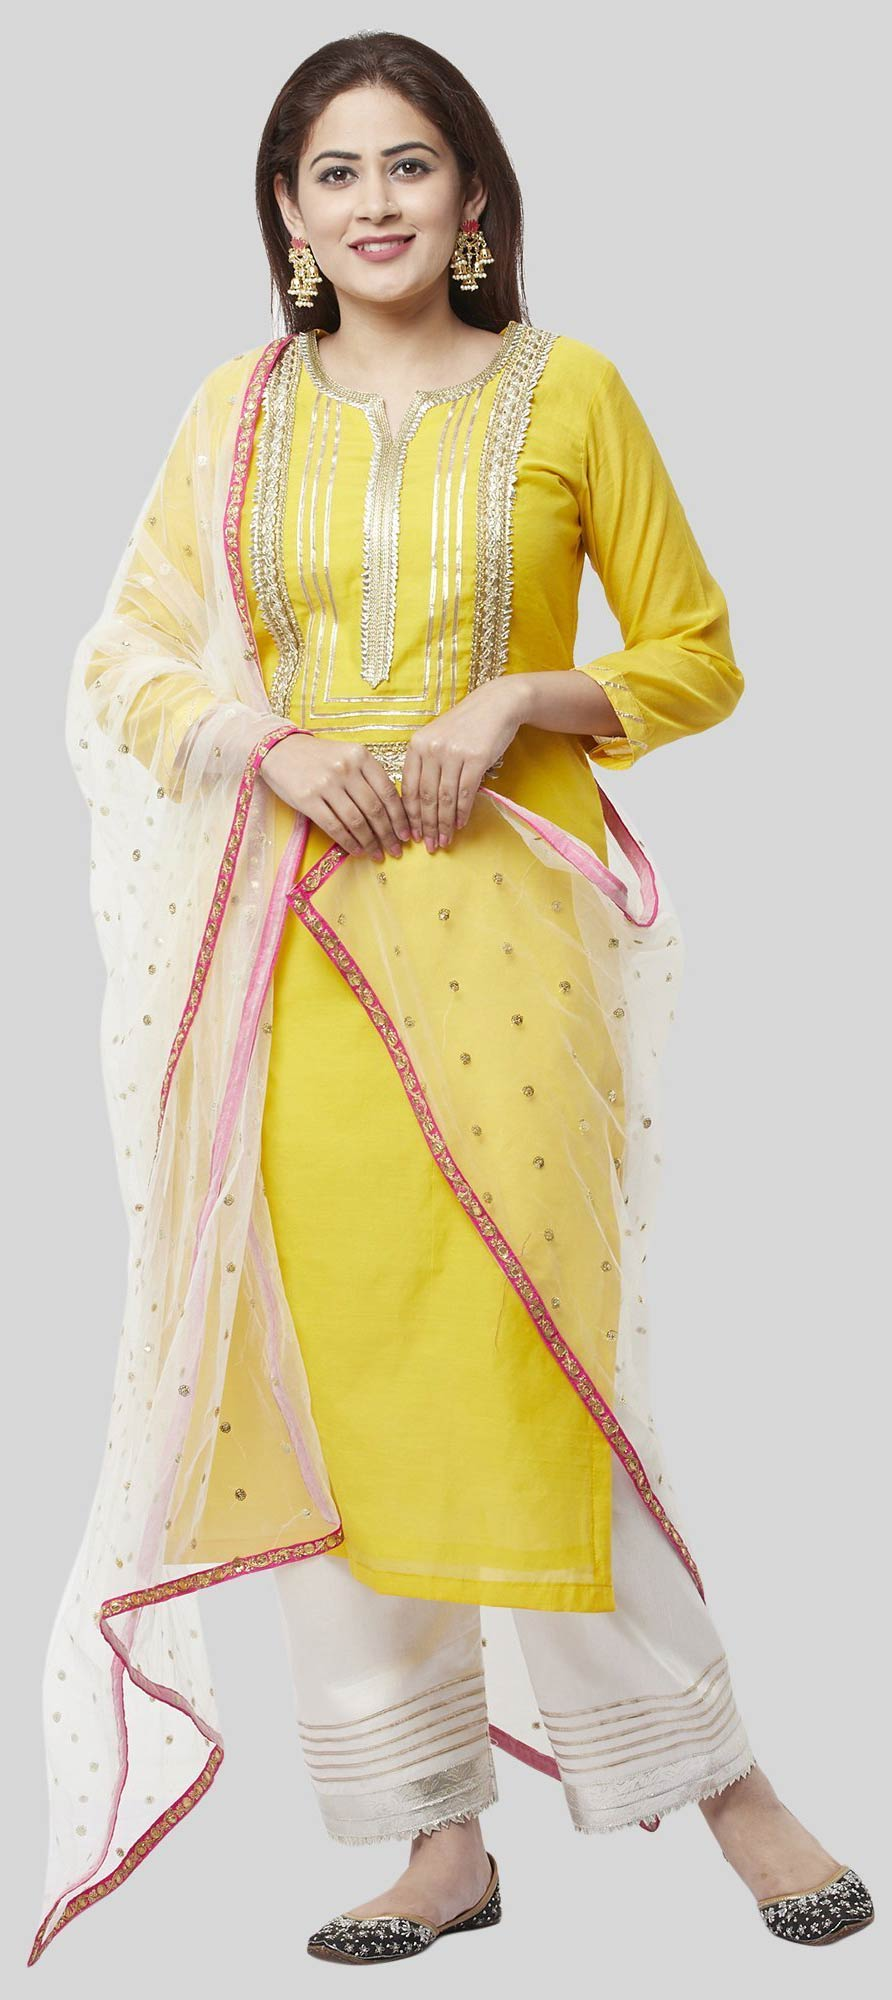 Chanderi Silk Party Wear Salwar Kameez in Yellow with Gota Patti work